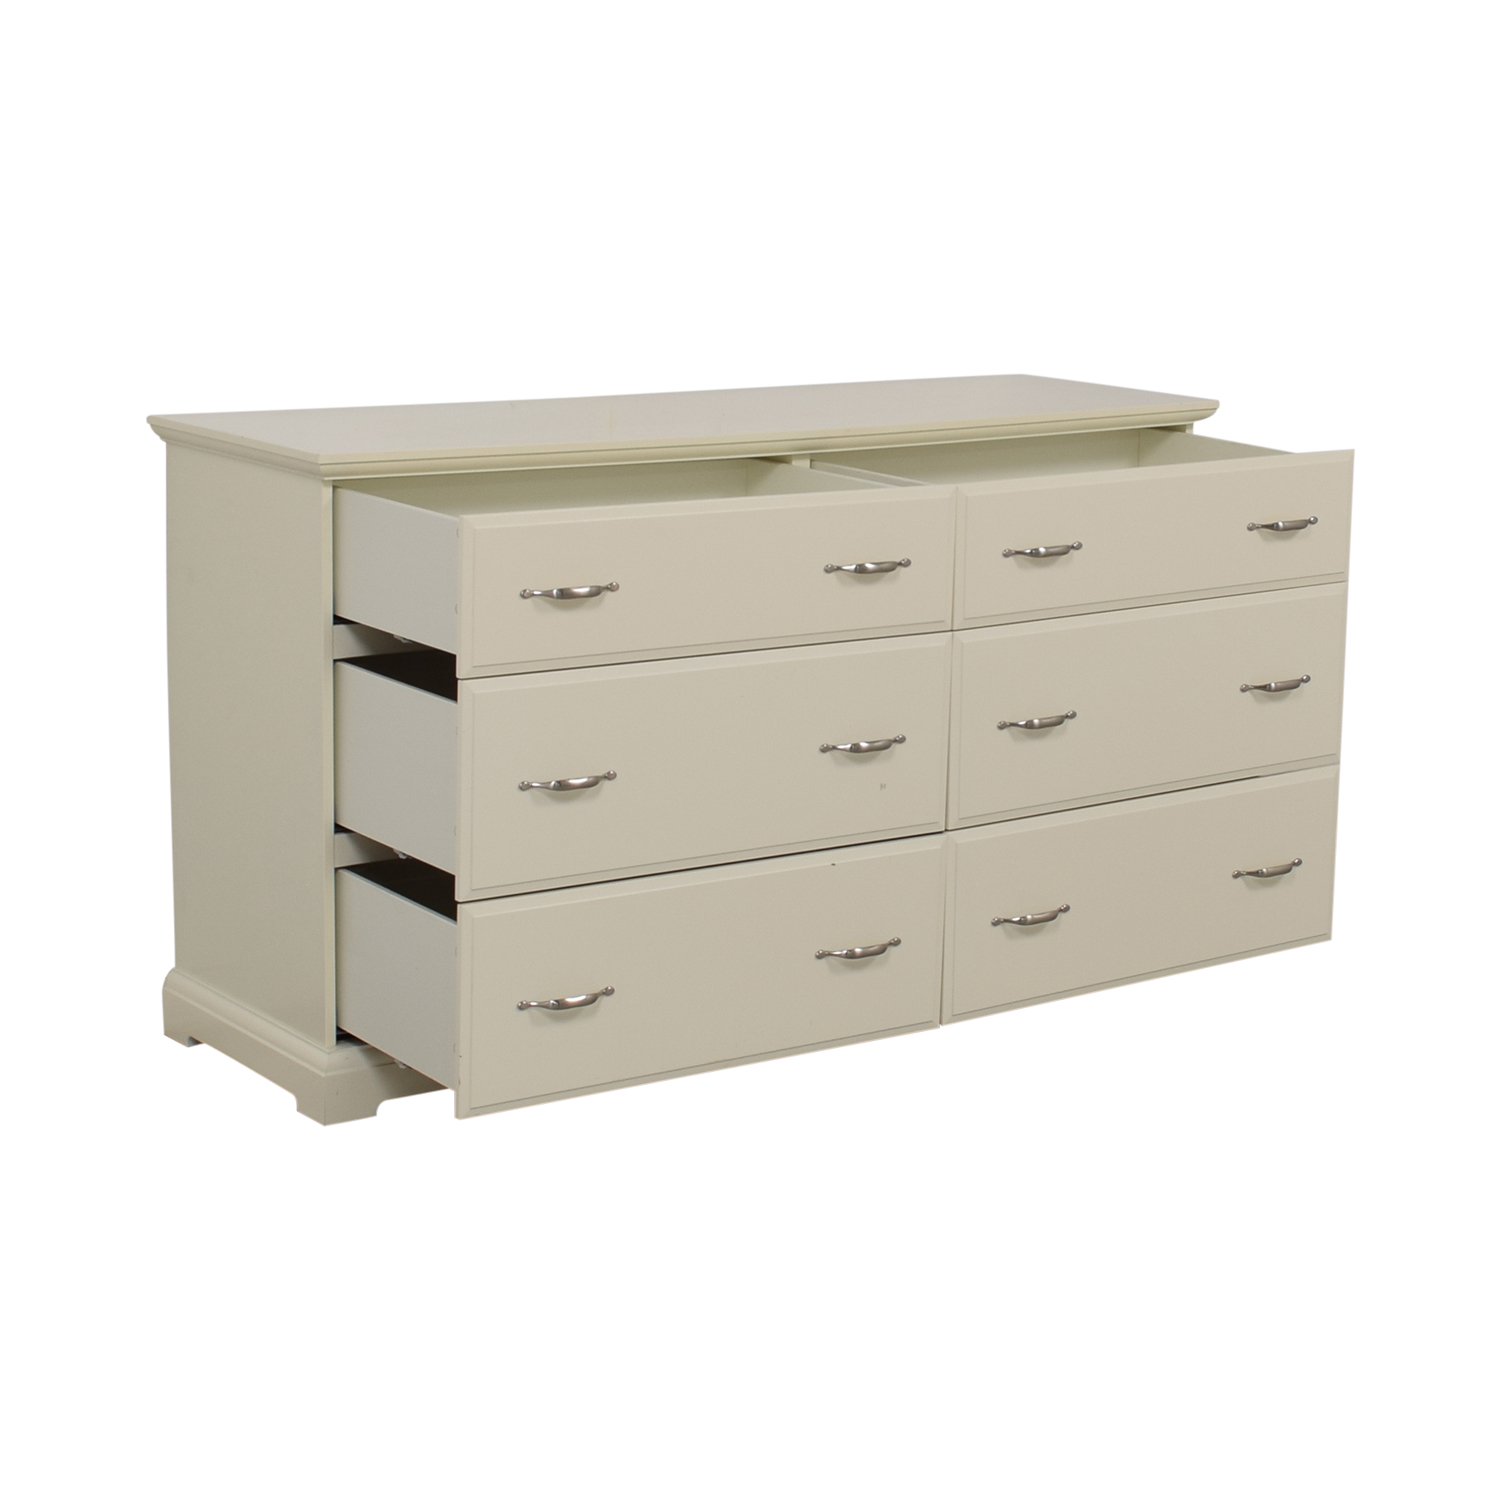 Storage Chest Ikea 70 Off Ikea Ikea Birkeland Chest Of Six Drawers Storage